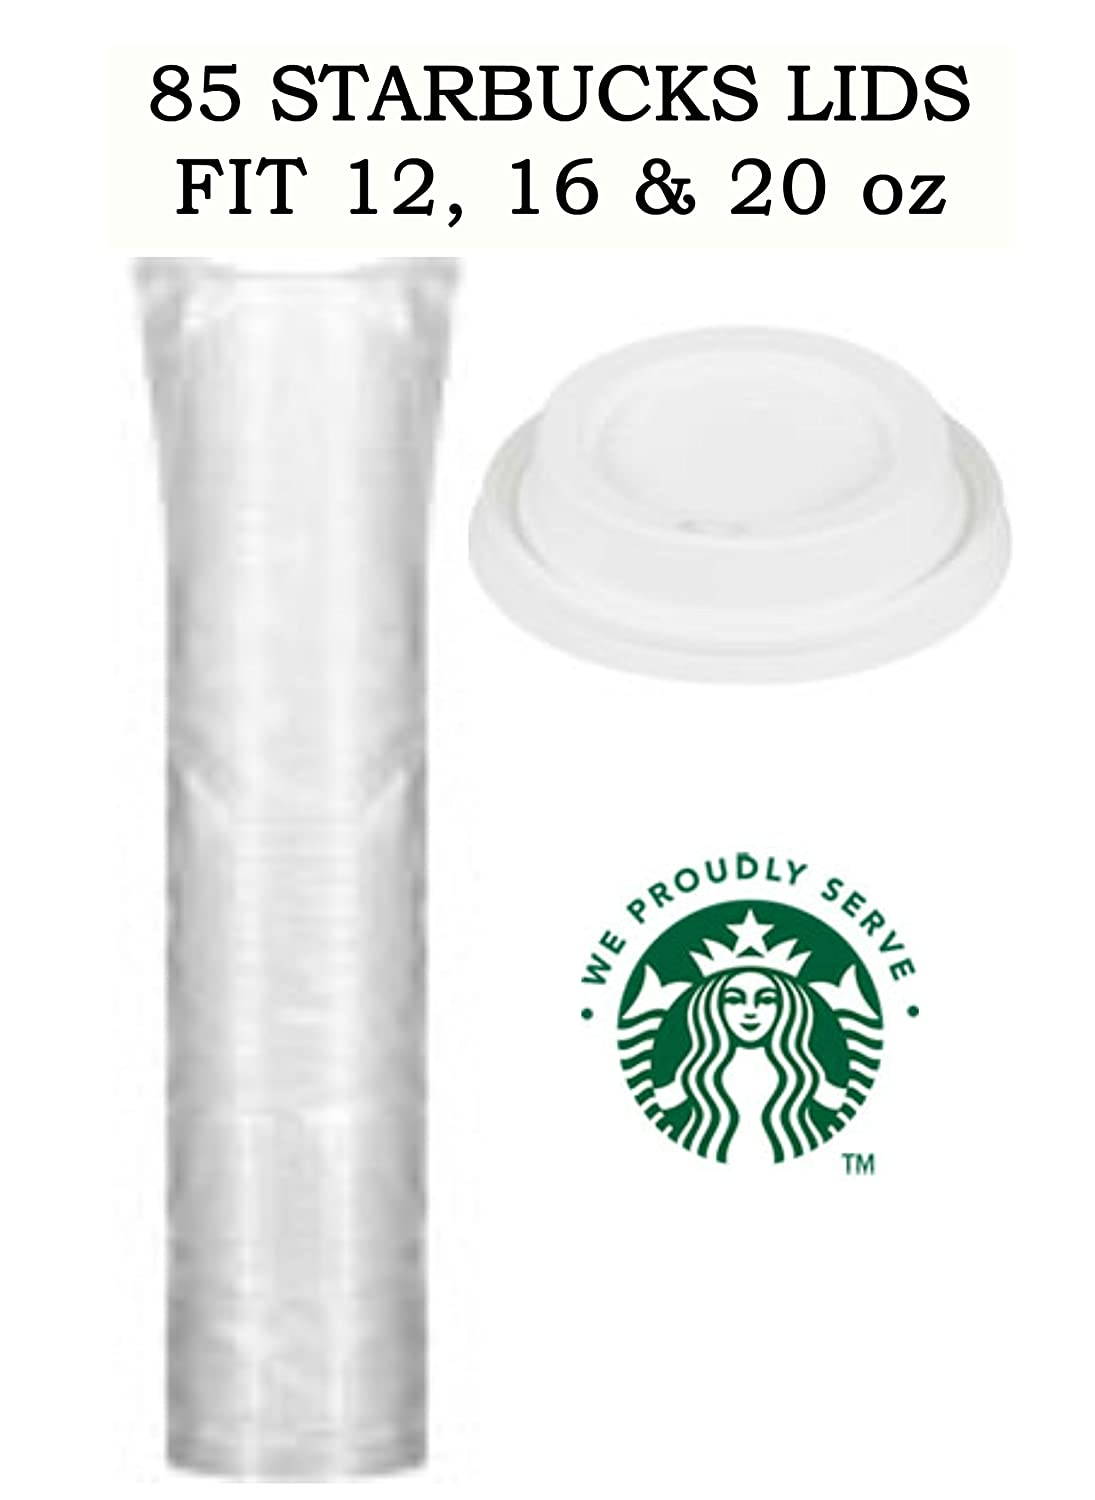 Starbucks Coffee Cup Lids 12 20 Oz Size Pack Of 85 Lids